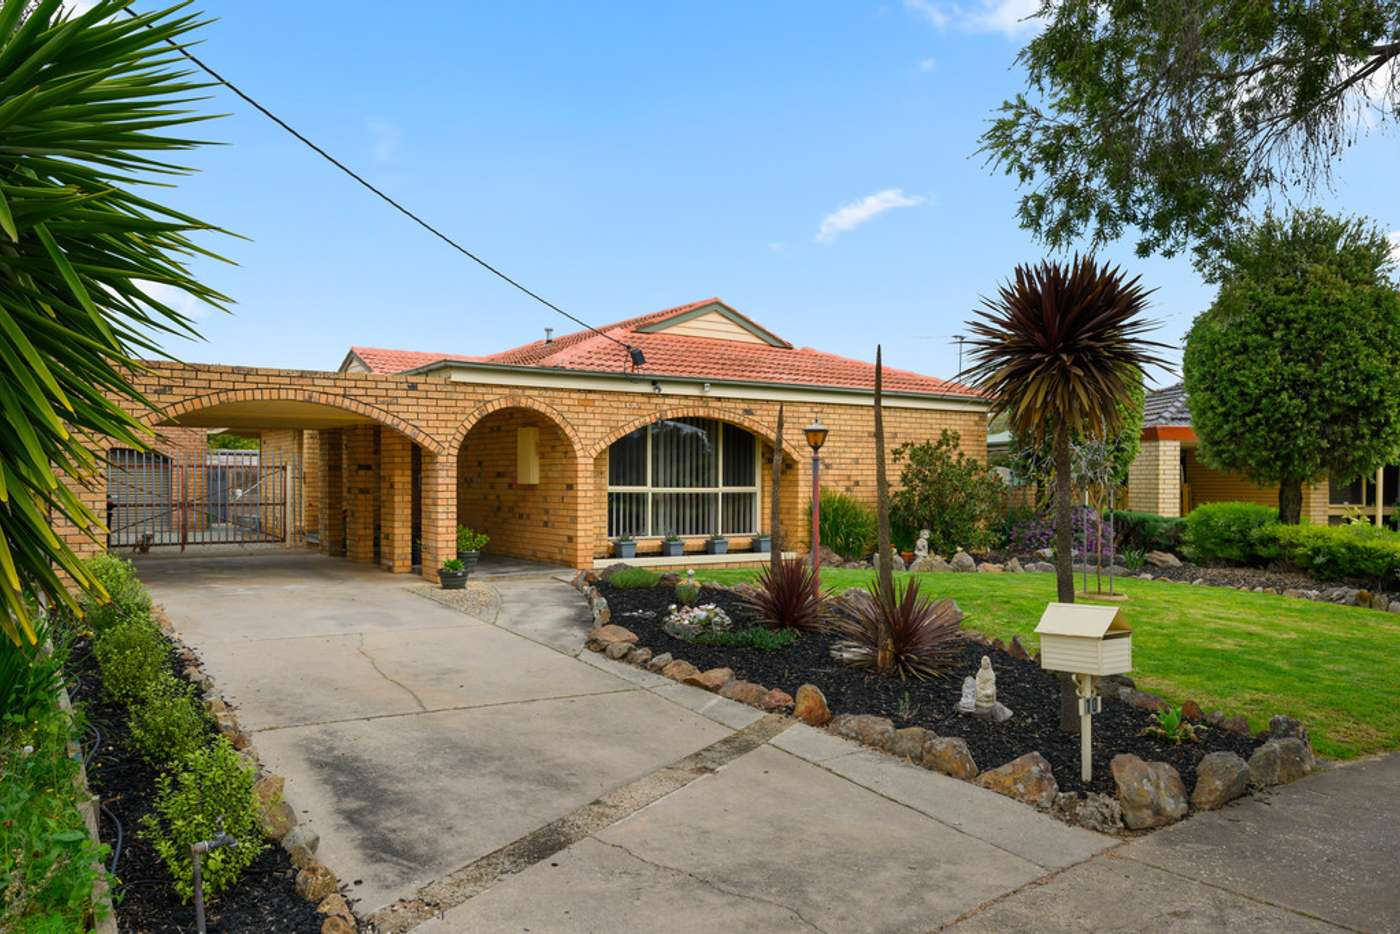 Main view of Homely house listing, 10 Maneroo Court, Wodonga VIC 3690